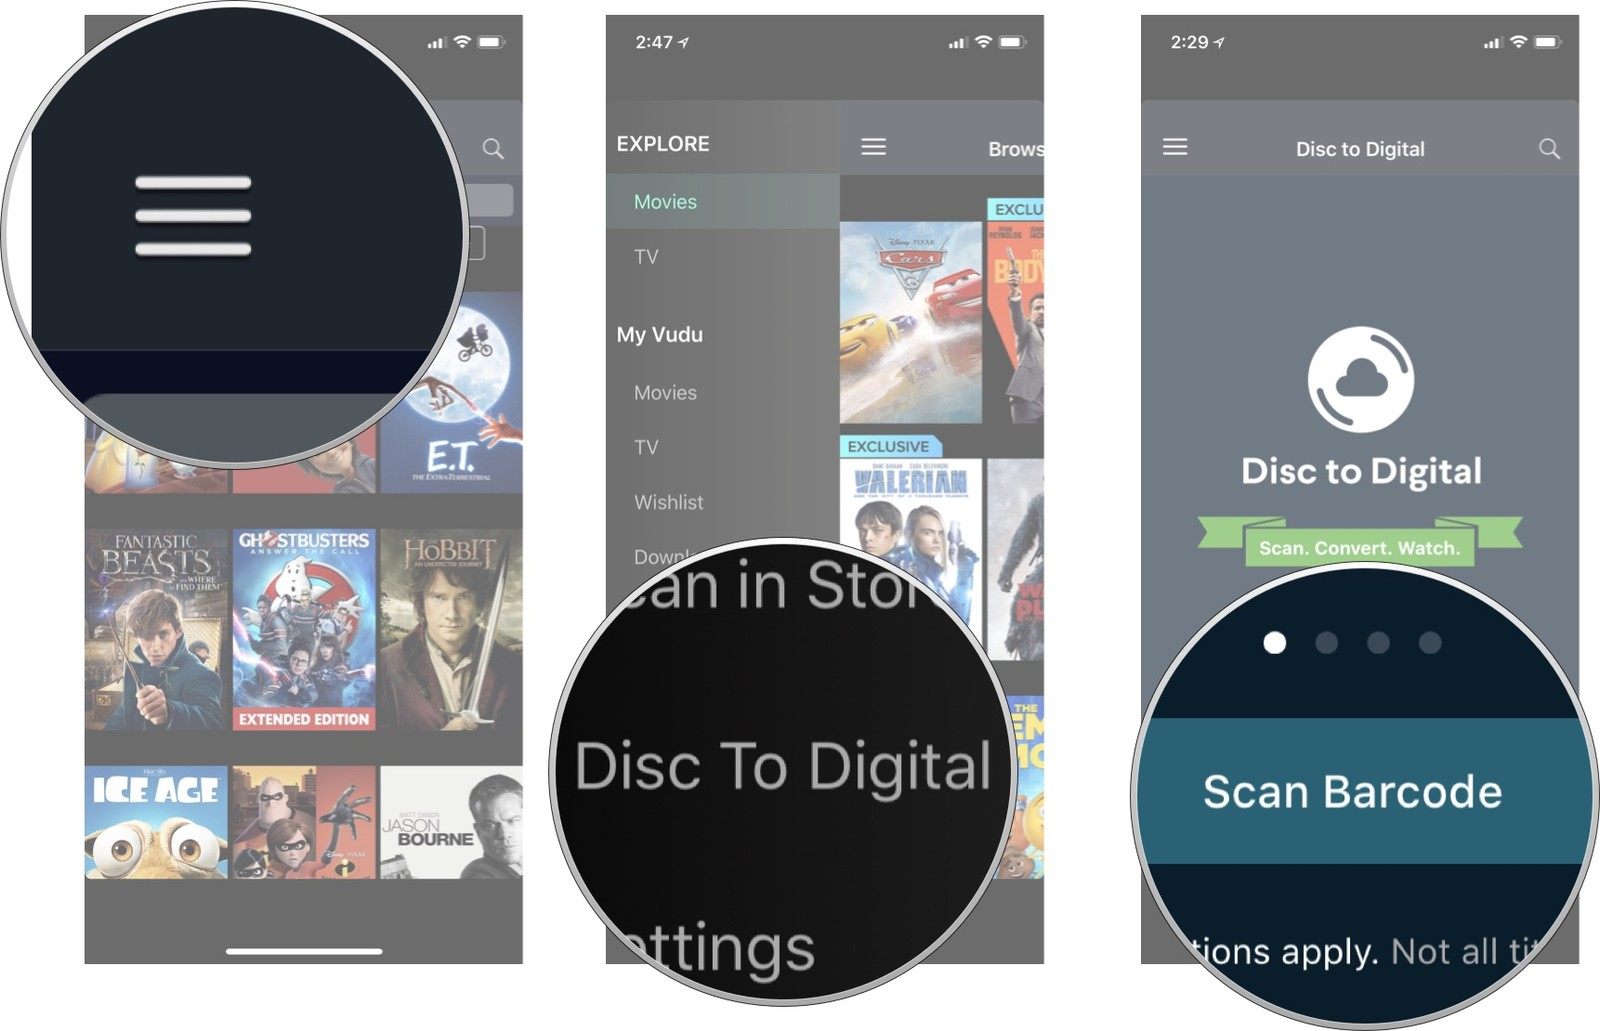 Tap the menu icon, then tap Disc to Digital, then tap Scan Barcode